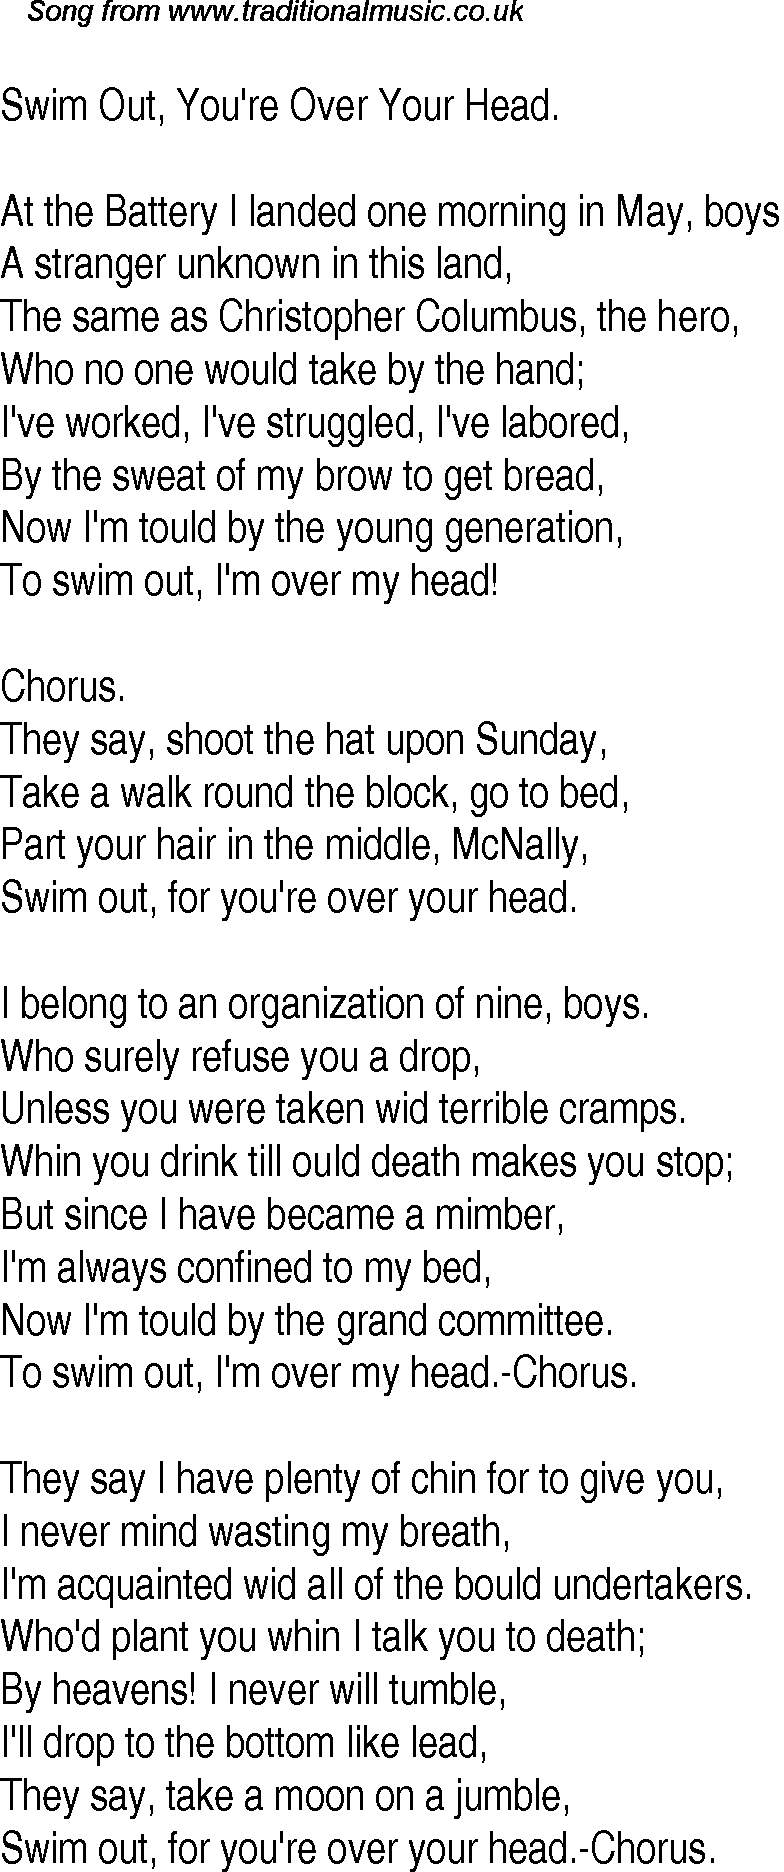 Old time song lyrics for 12 swim out youre over your head for Swimming swimming in the swimming pool song lyrics